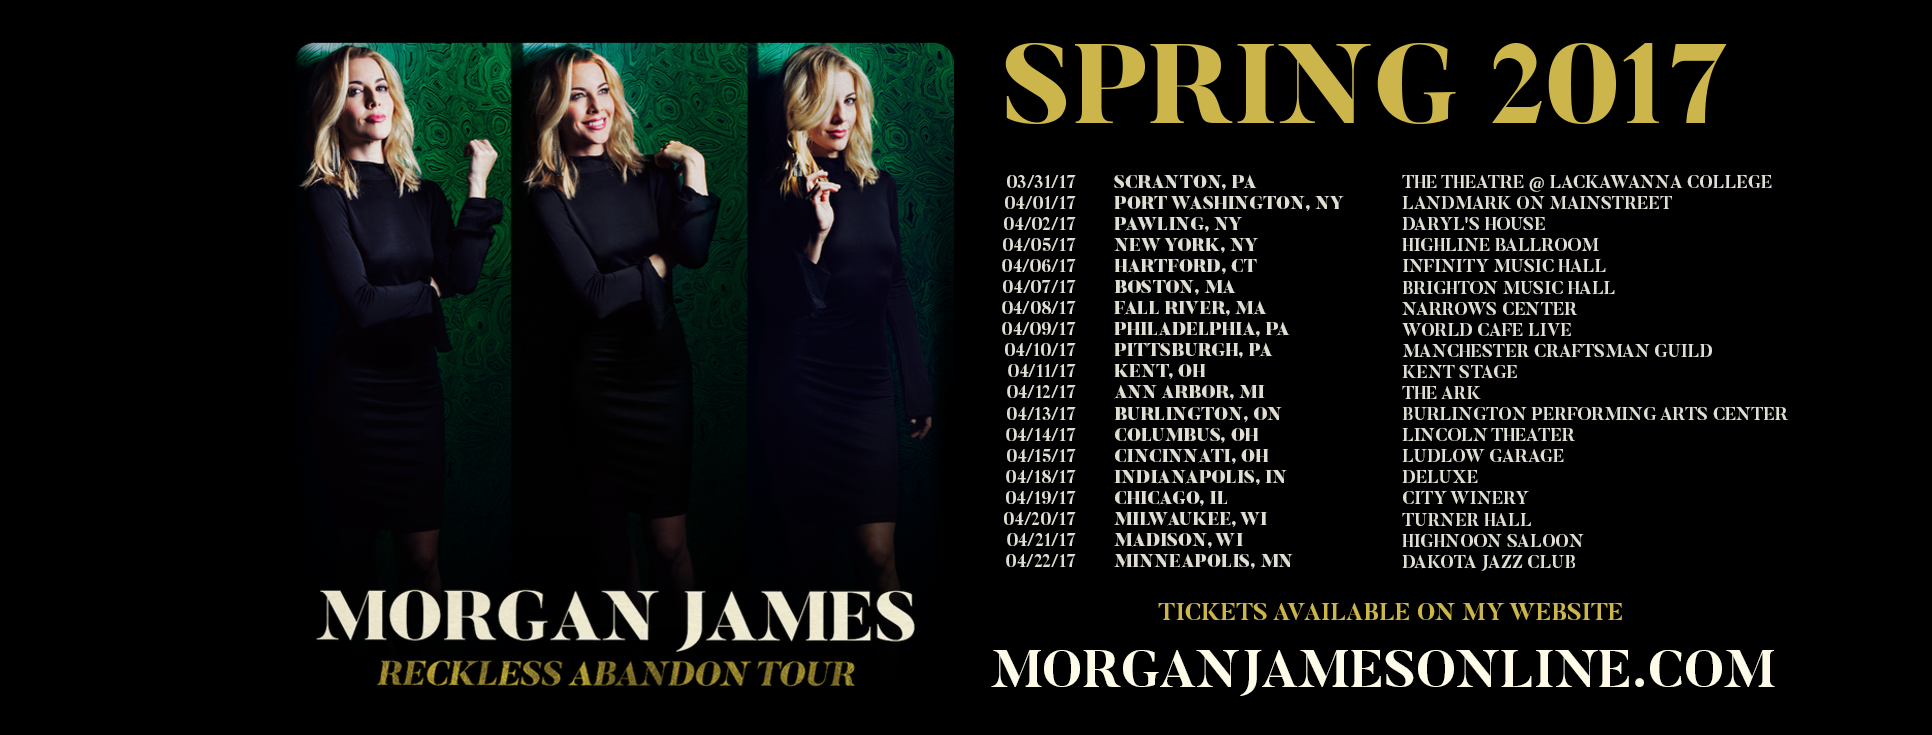 Morgan James - Reckless Abandon Tour Dates